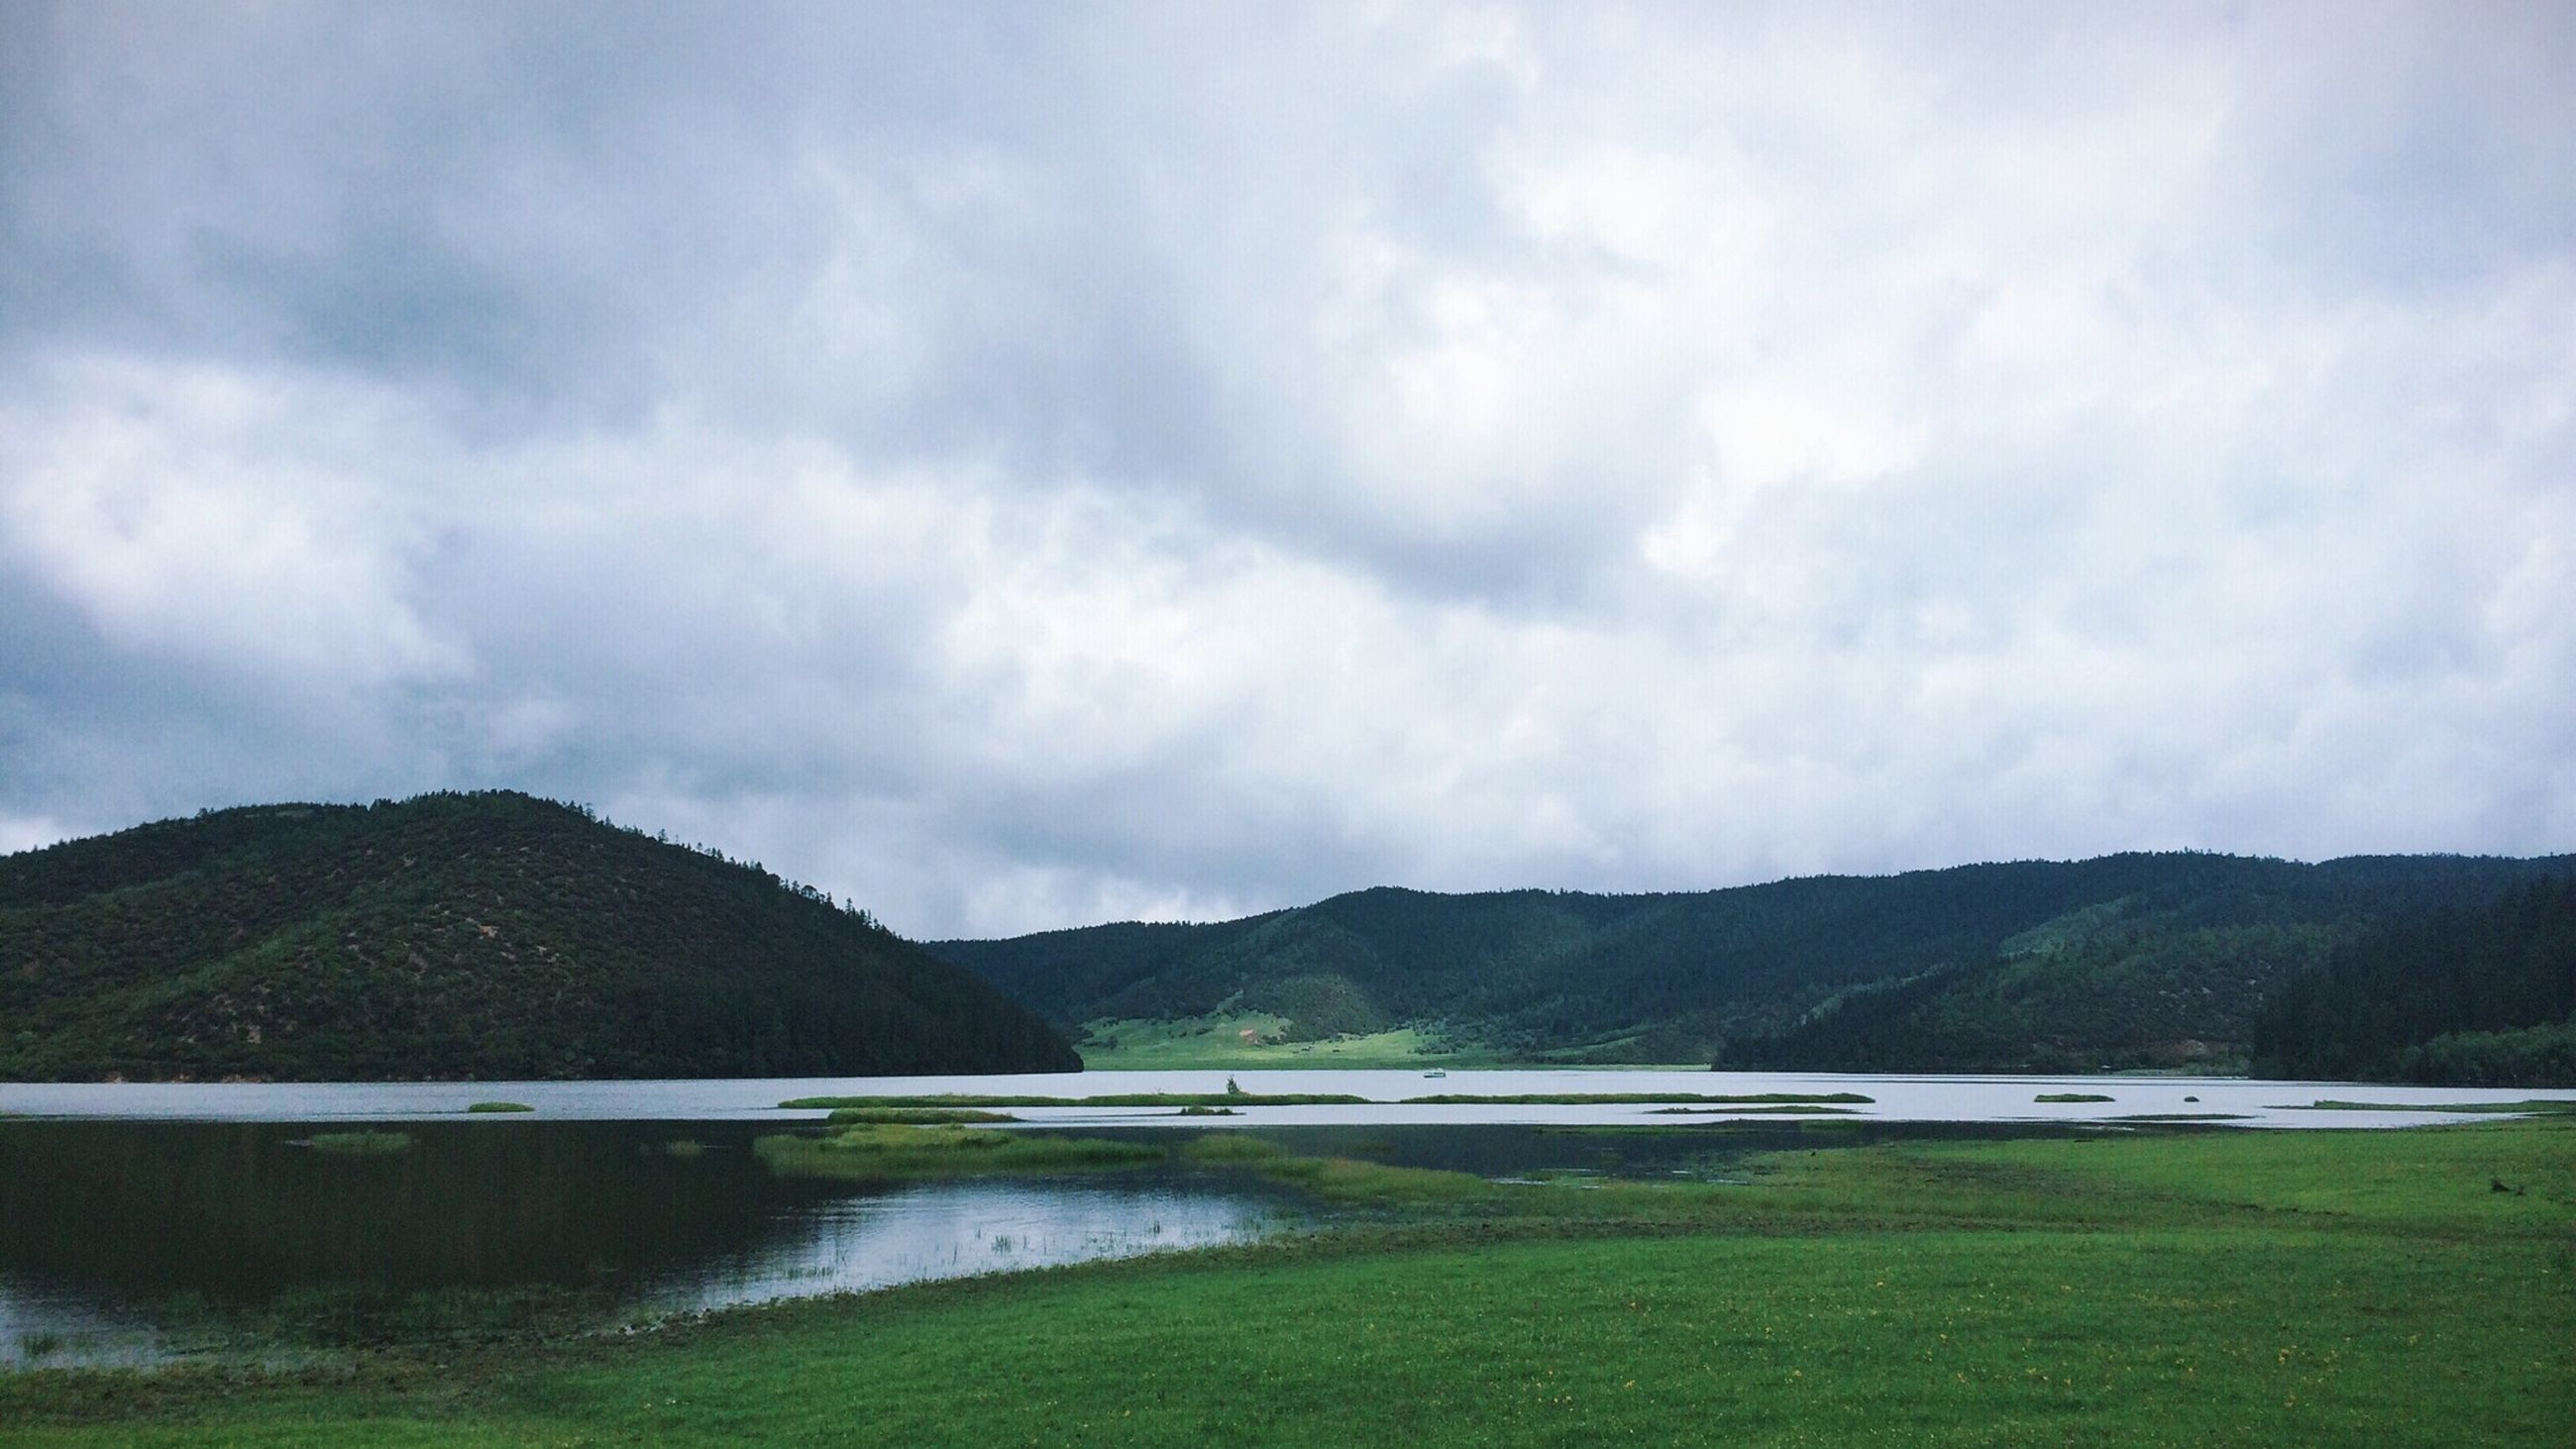 mountain, water, sky, mountain range, tranquil scene, lake, tranquility, scenics, cloud - sky, beauty in nature, cloudy, nature, cloud, river, idyllic, landscape, non-urban scene, day, lakeshore, grass